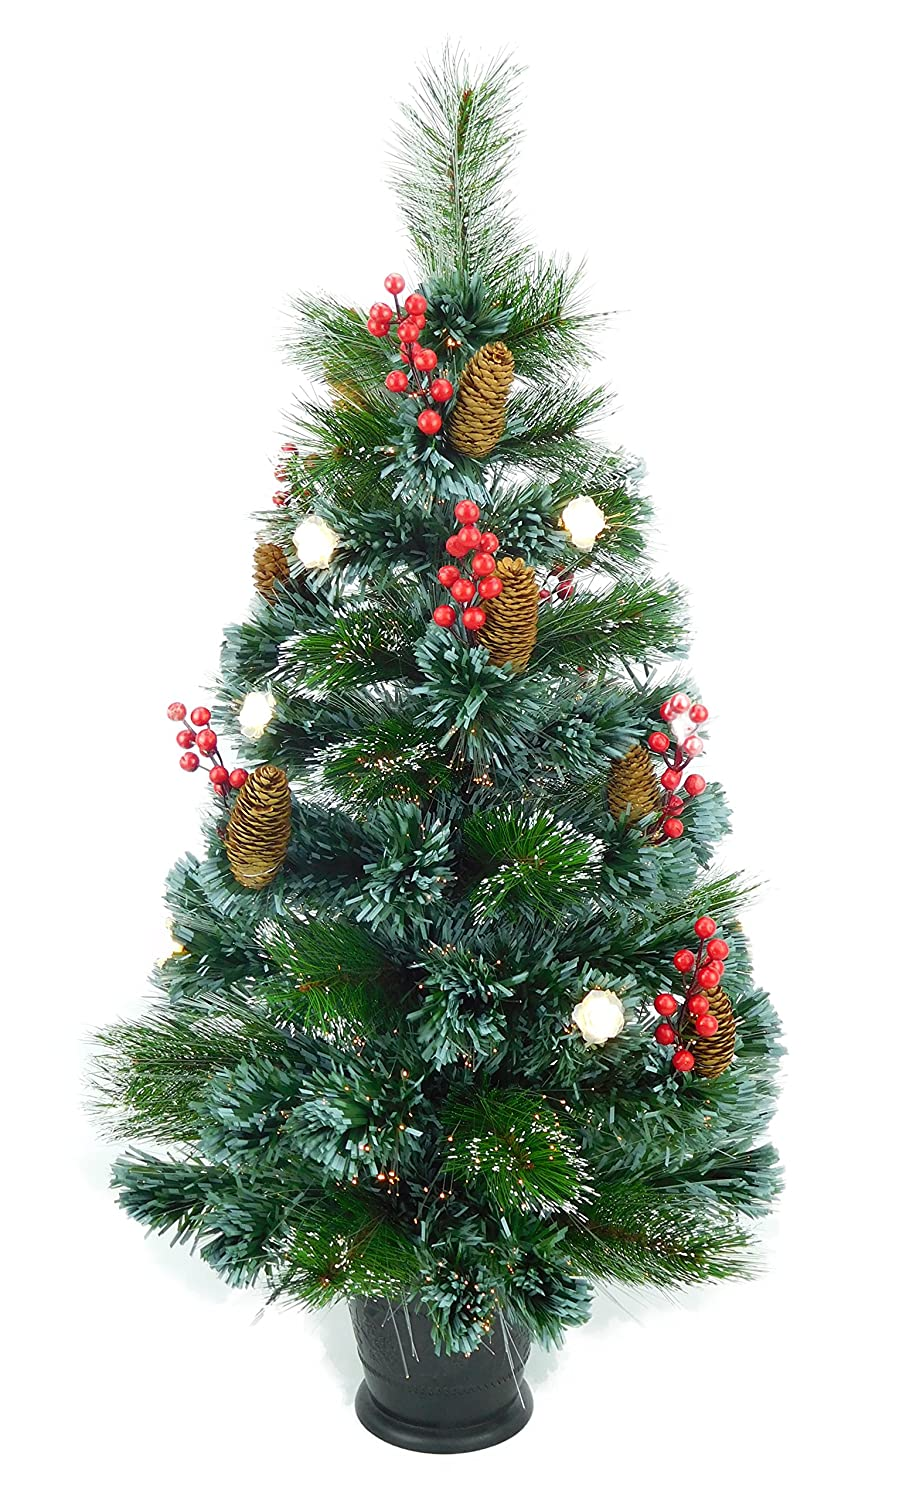 Christmas Concepts® 3ft (90cm) Pre Lit Frosted Fibre Optic Christmas Tree With Natural Cones & Red Berries With Warm White LED Rose Lights